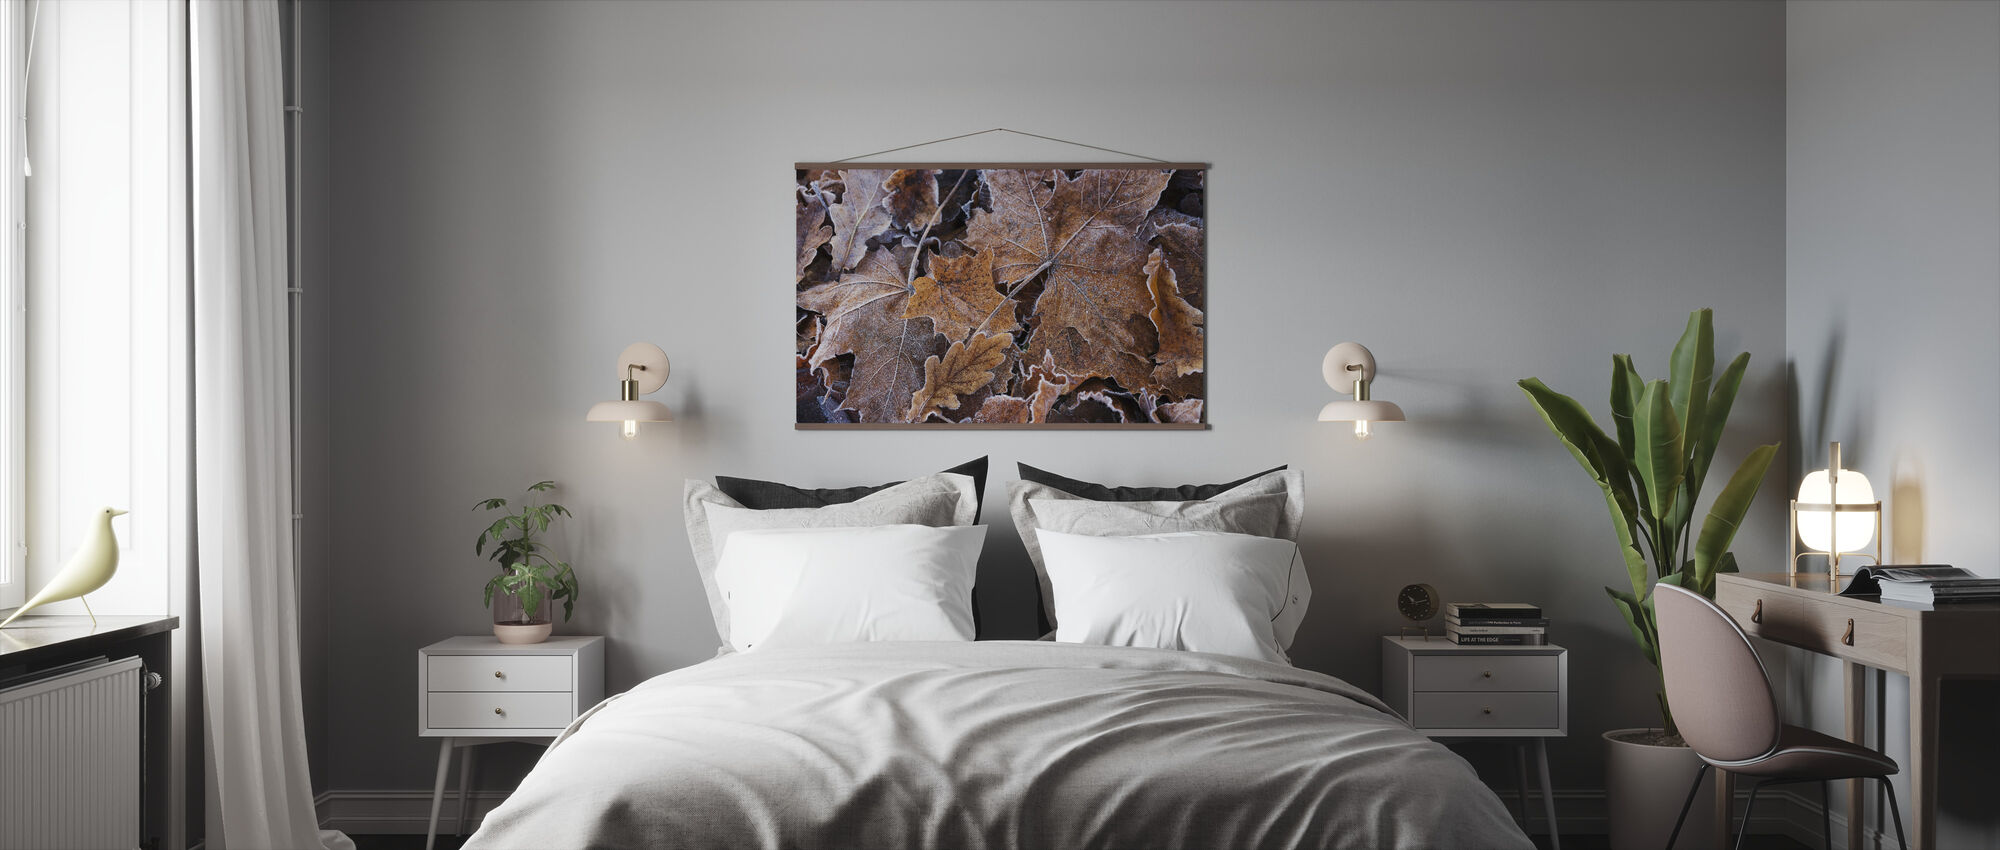 Formations - Poster - Bedroom